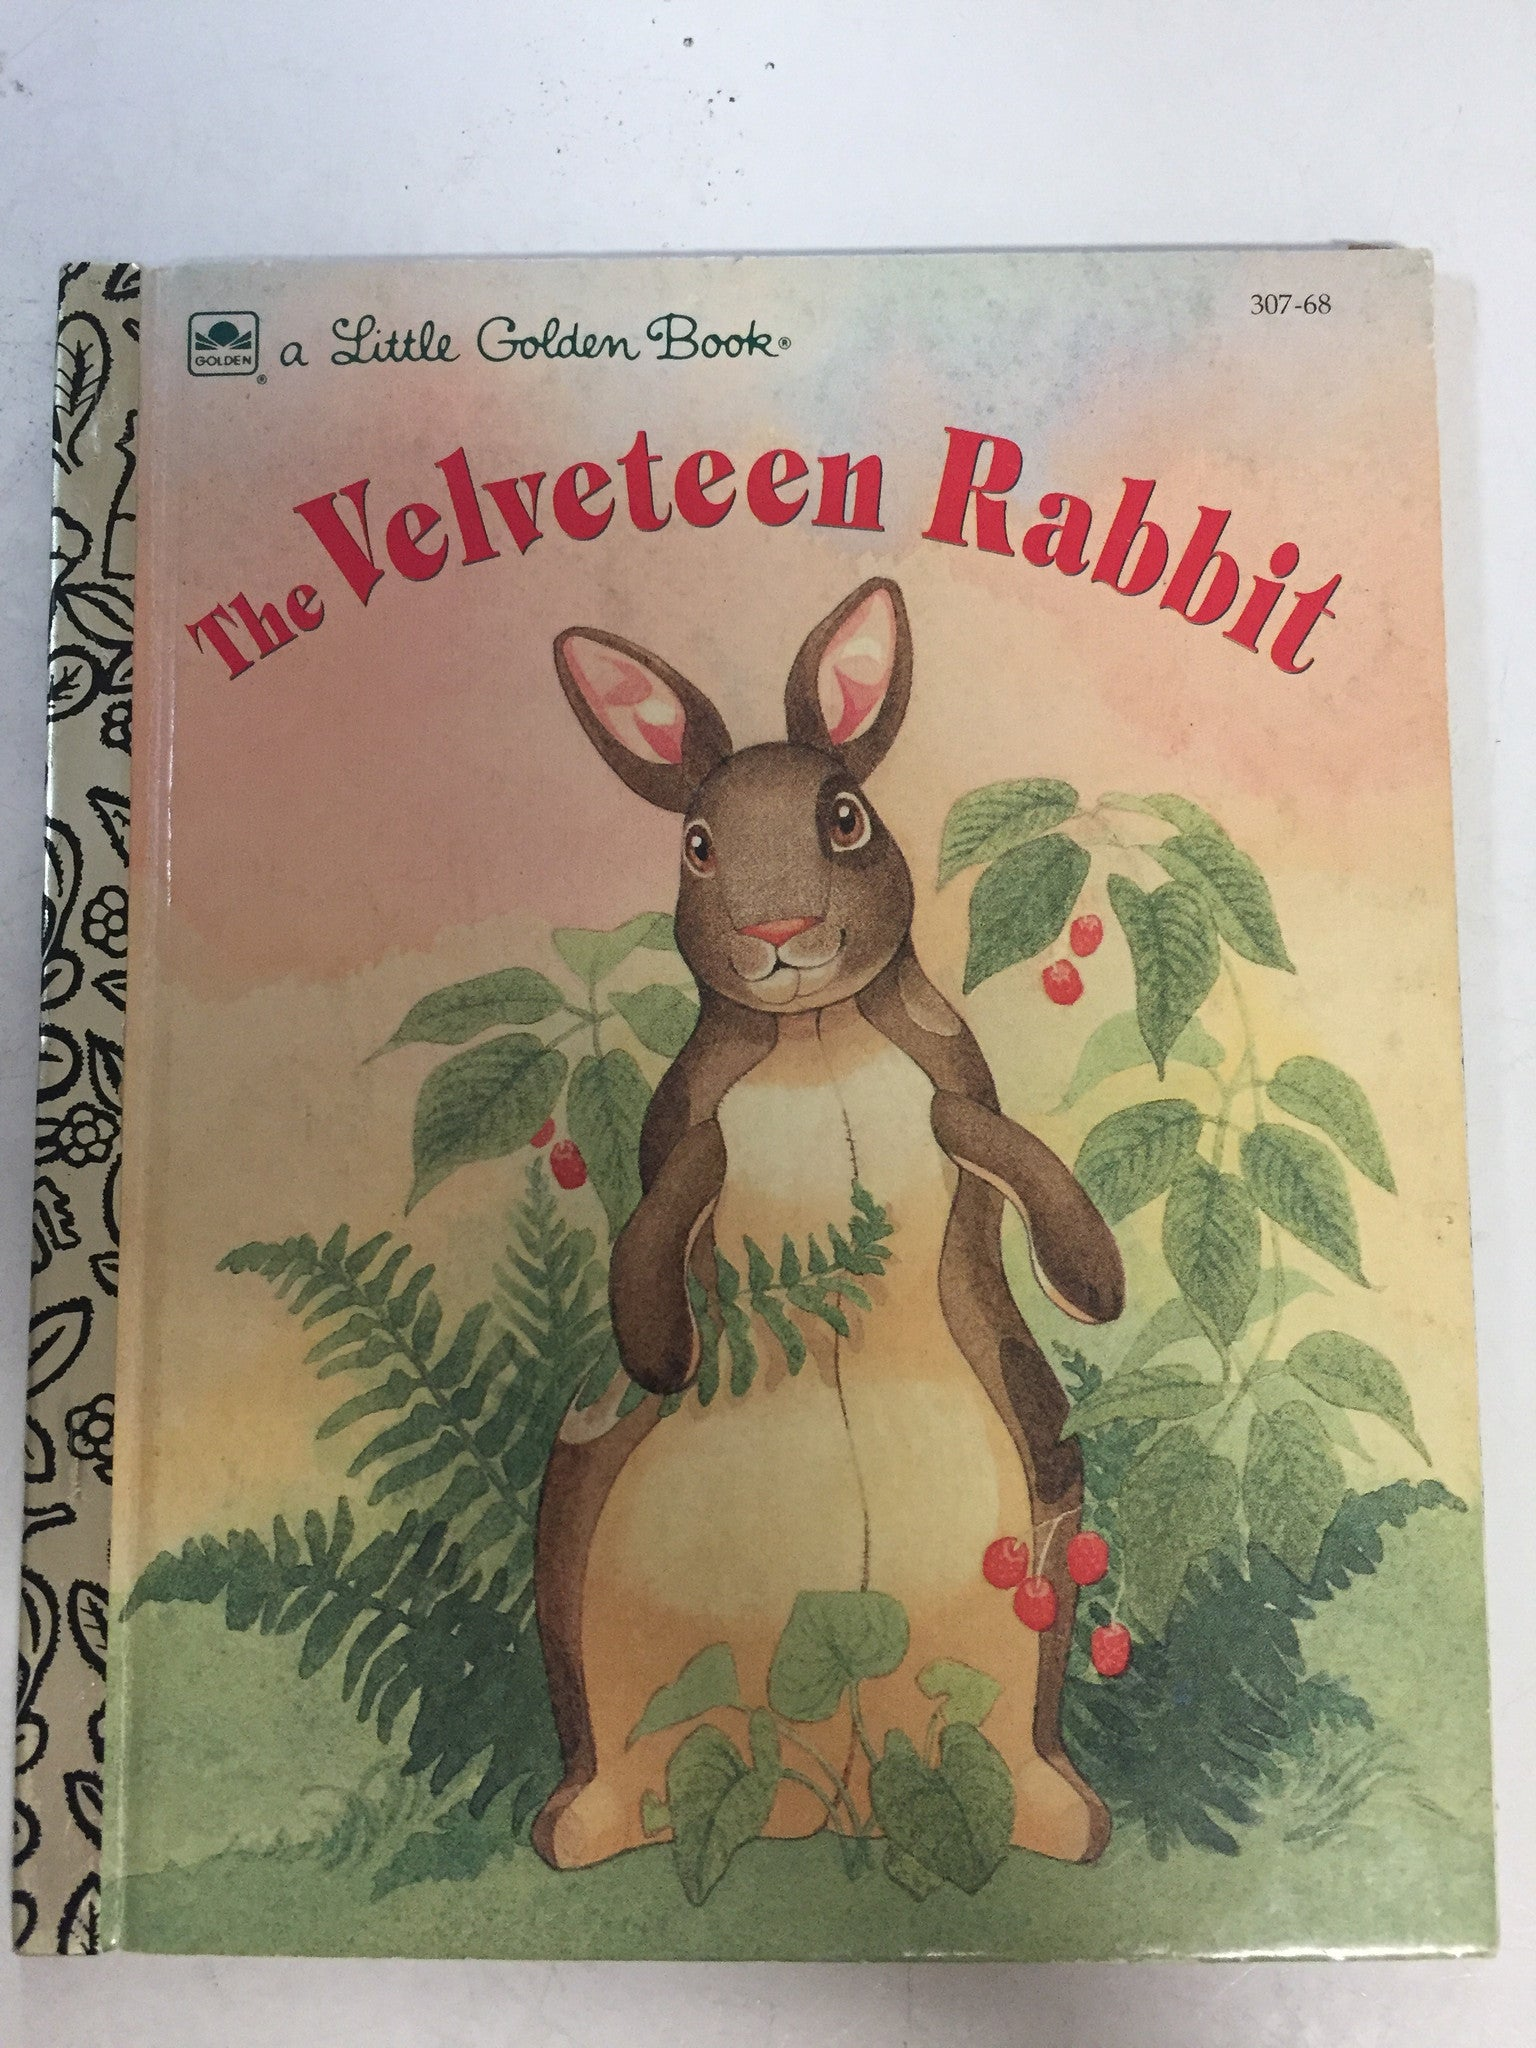 The Velveteen Rabbit - Slickcatbooks